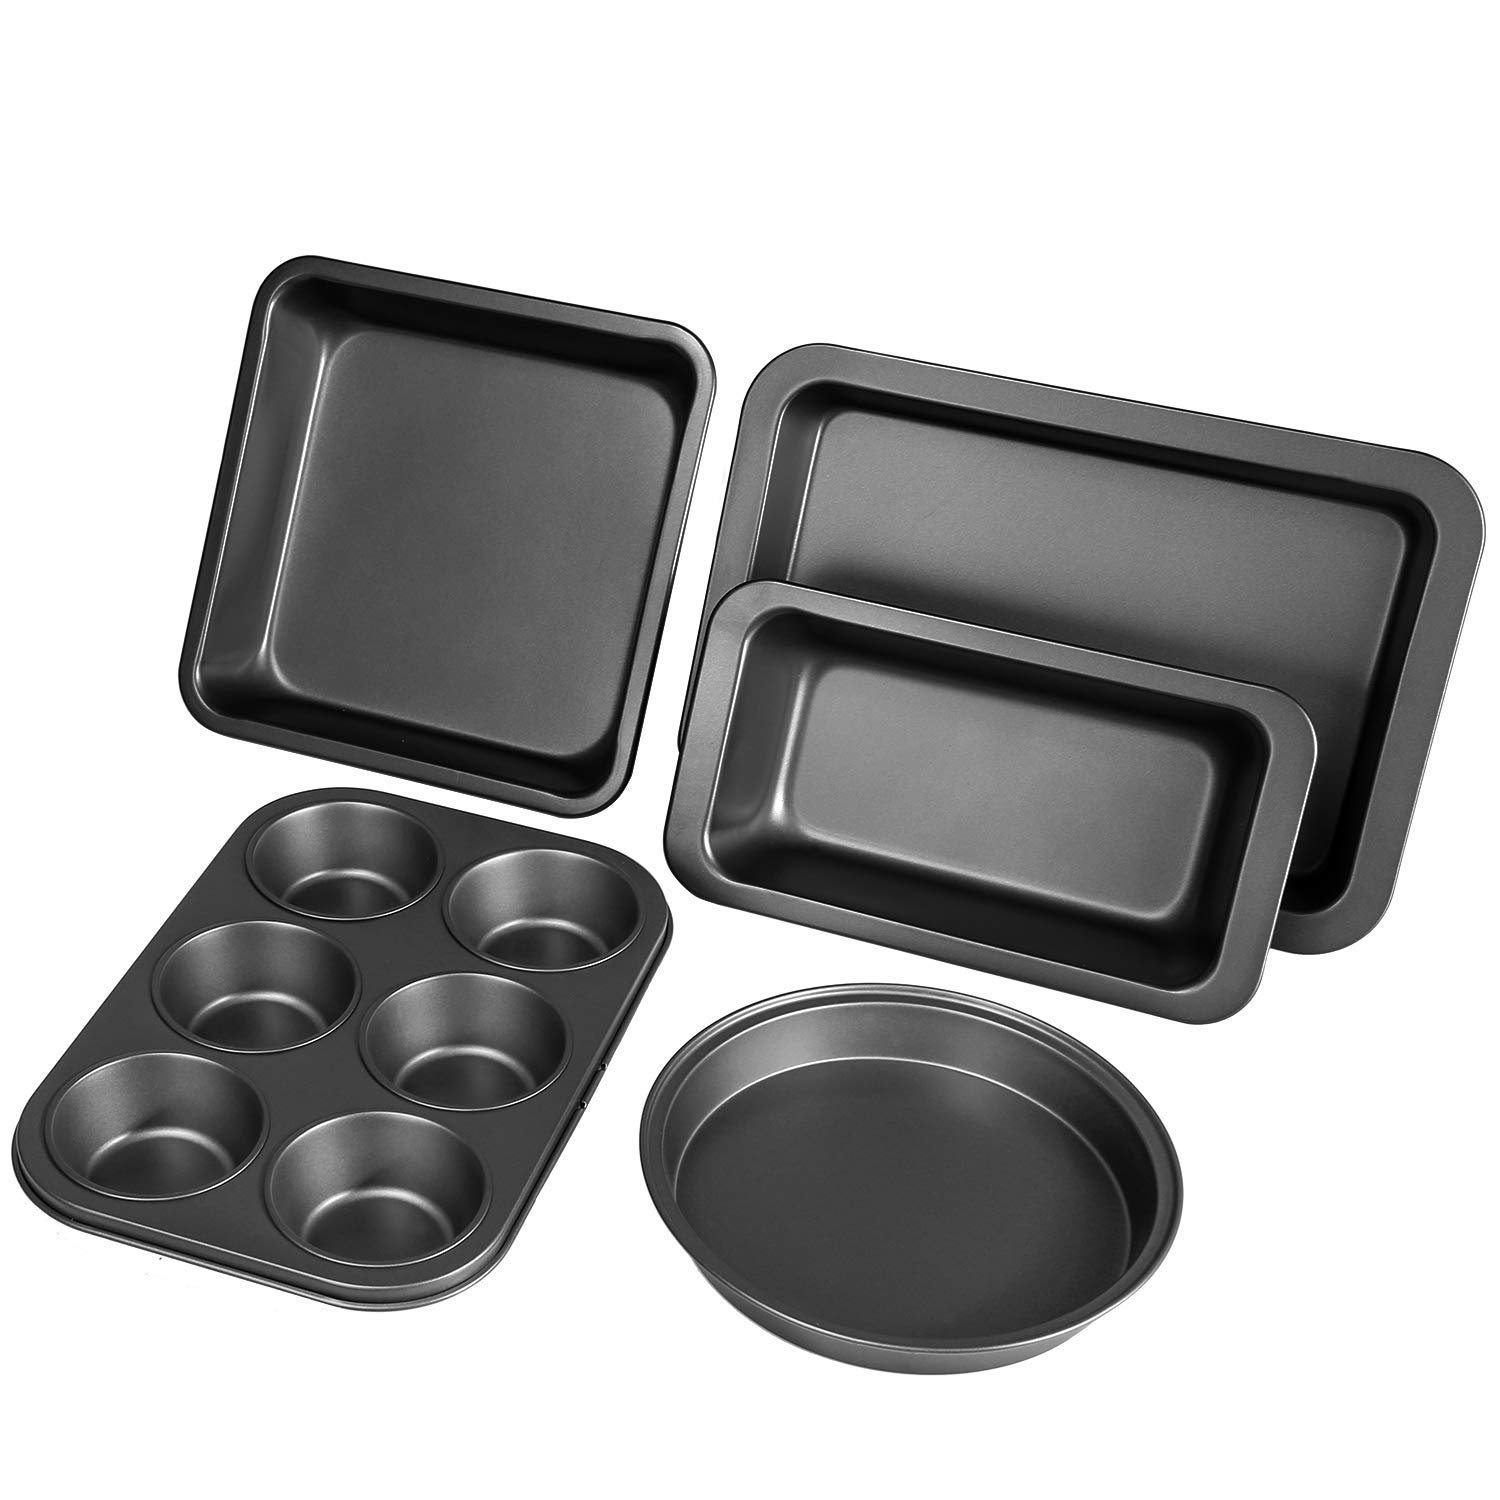 Cheap Square Baking Pan Sizes, find Square Baking Pan Sizes deals on